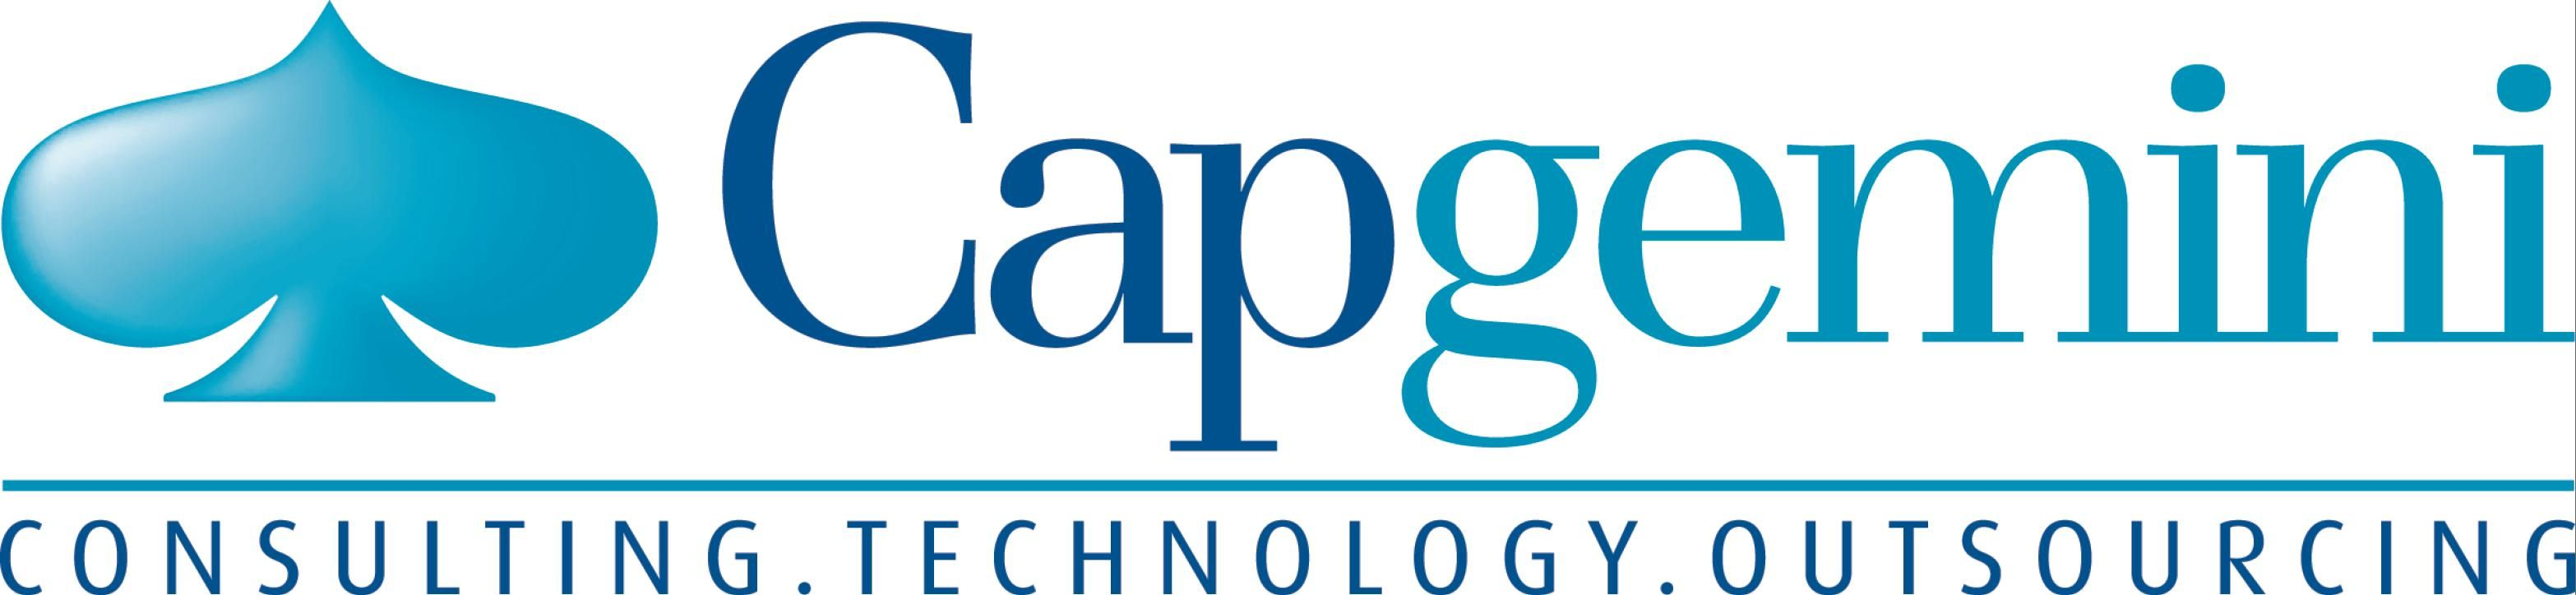 With more than 130,000 people in 44 countries, Capgemini